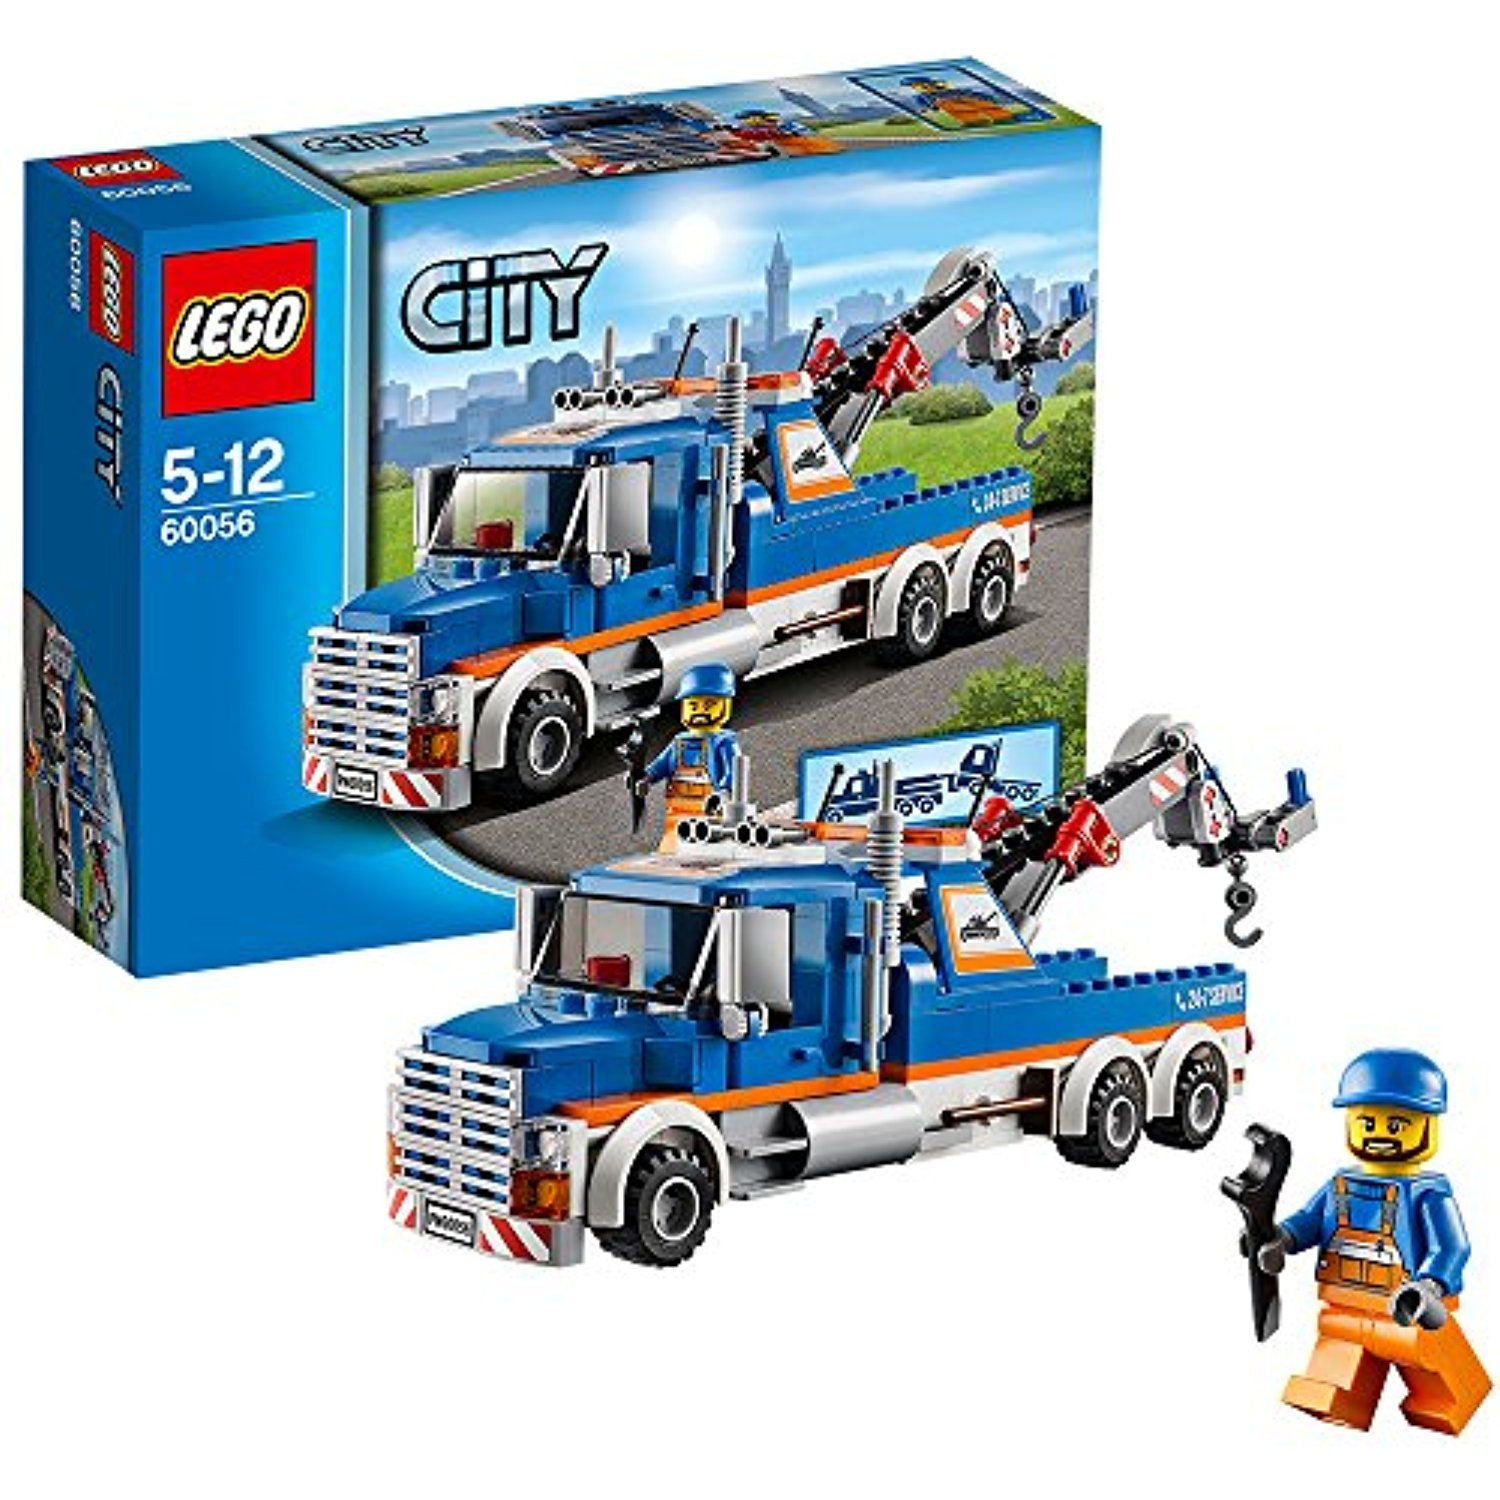 Lego City Great Vehicles 60056 Tow Truck Find Out More About The Great Product At The Image Link This Is An Affi Lego City Lego Sets For Boys Lego Truck